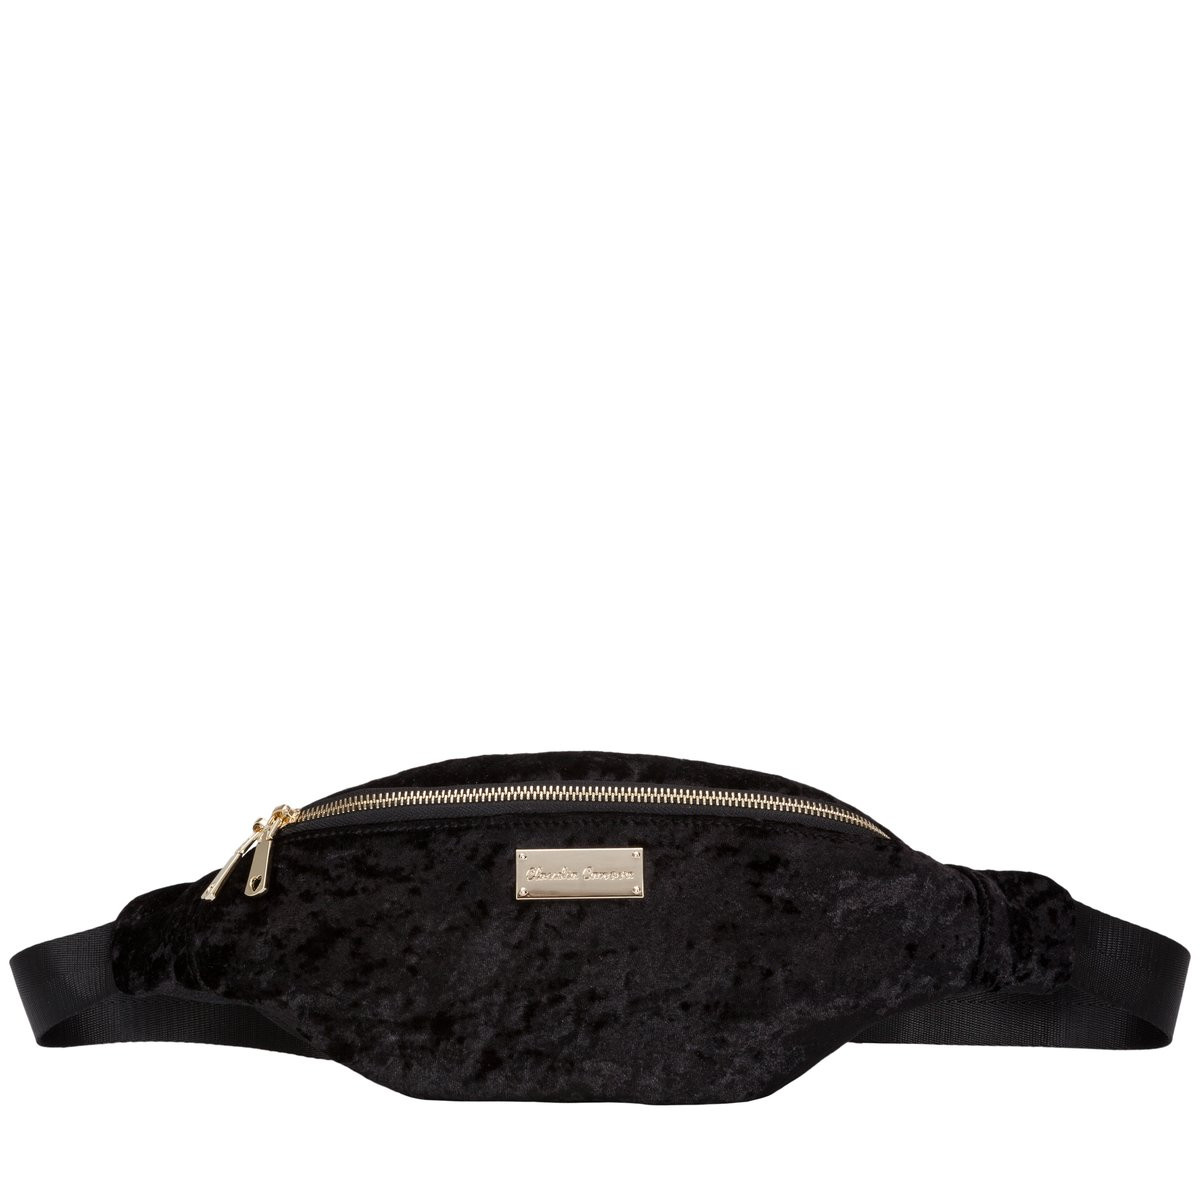 black bum bag